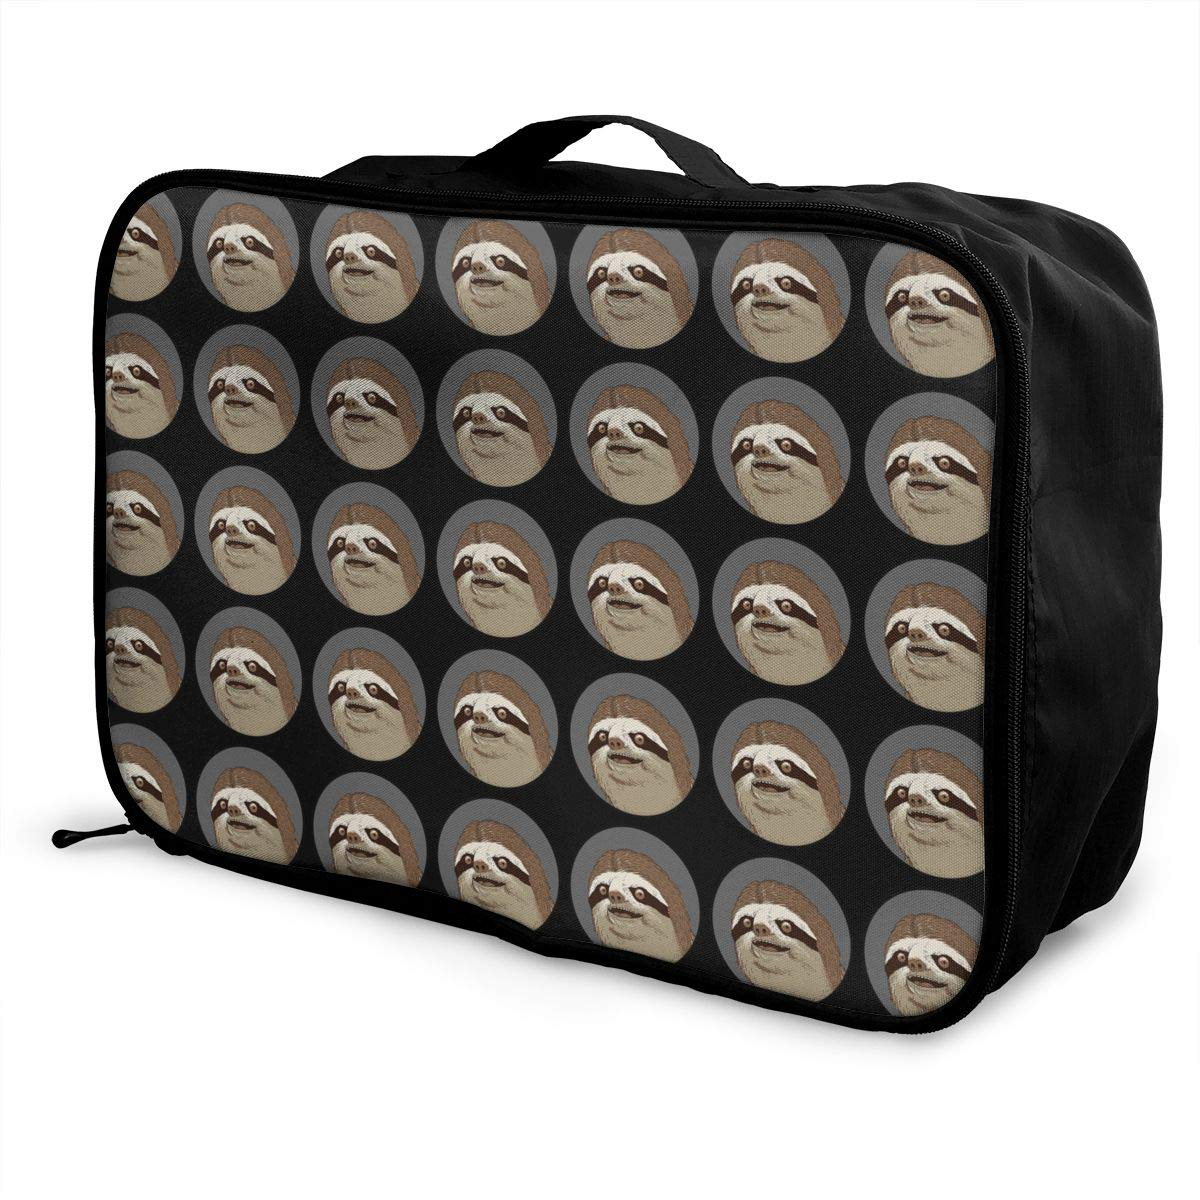 YueLJB Sloth Pizza Lightweight Large Capacity Portable Luggage Bag Travel Duffel Bag Storage Carry Luggage Duffle Tote Bag